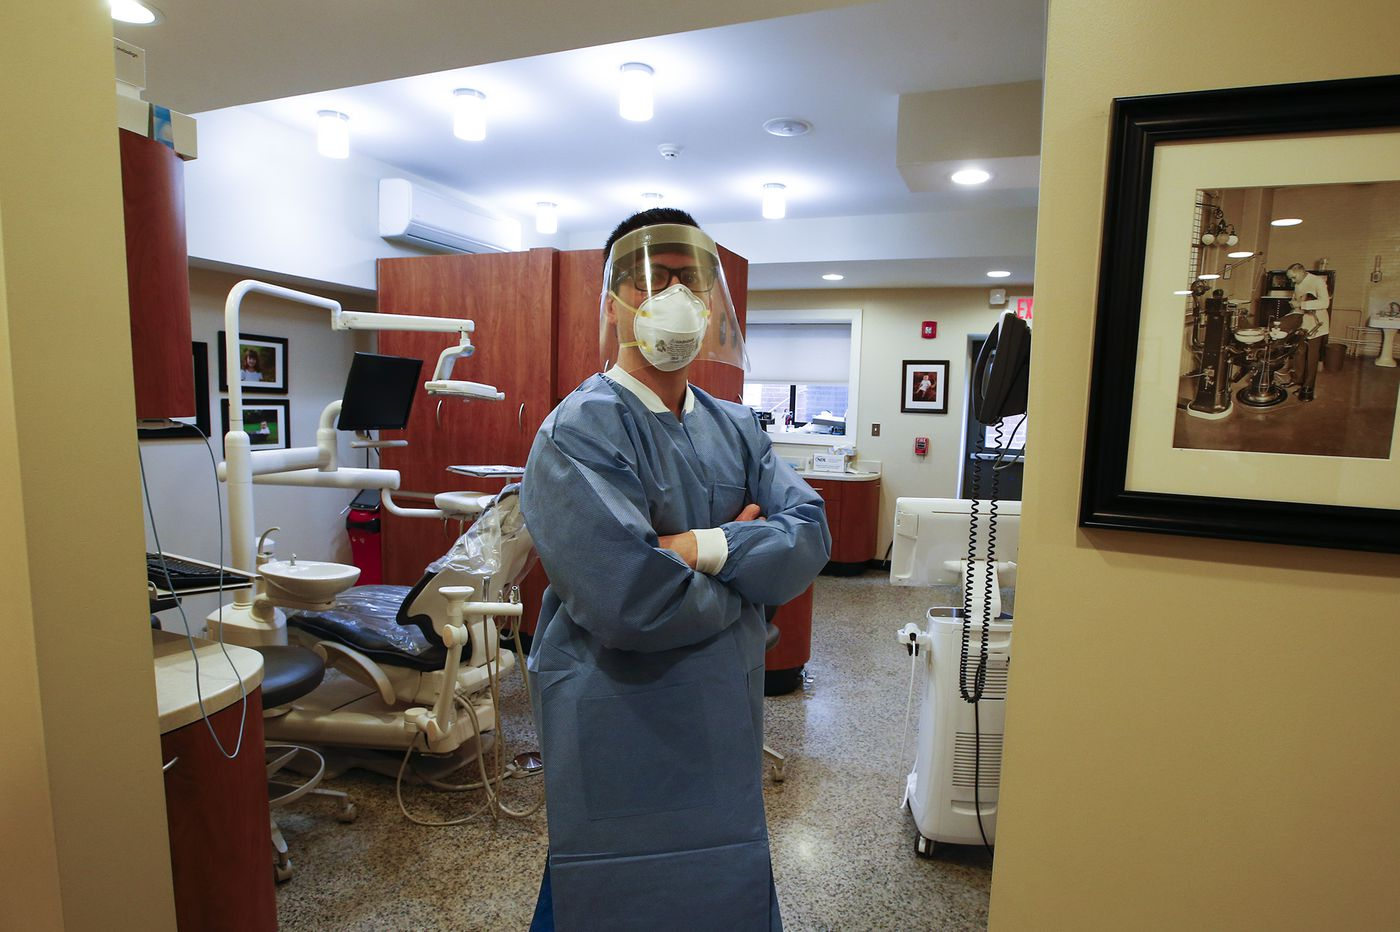 A PPE fee at the dentist? New requirements could raise prices for patients.